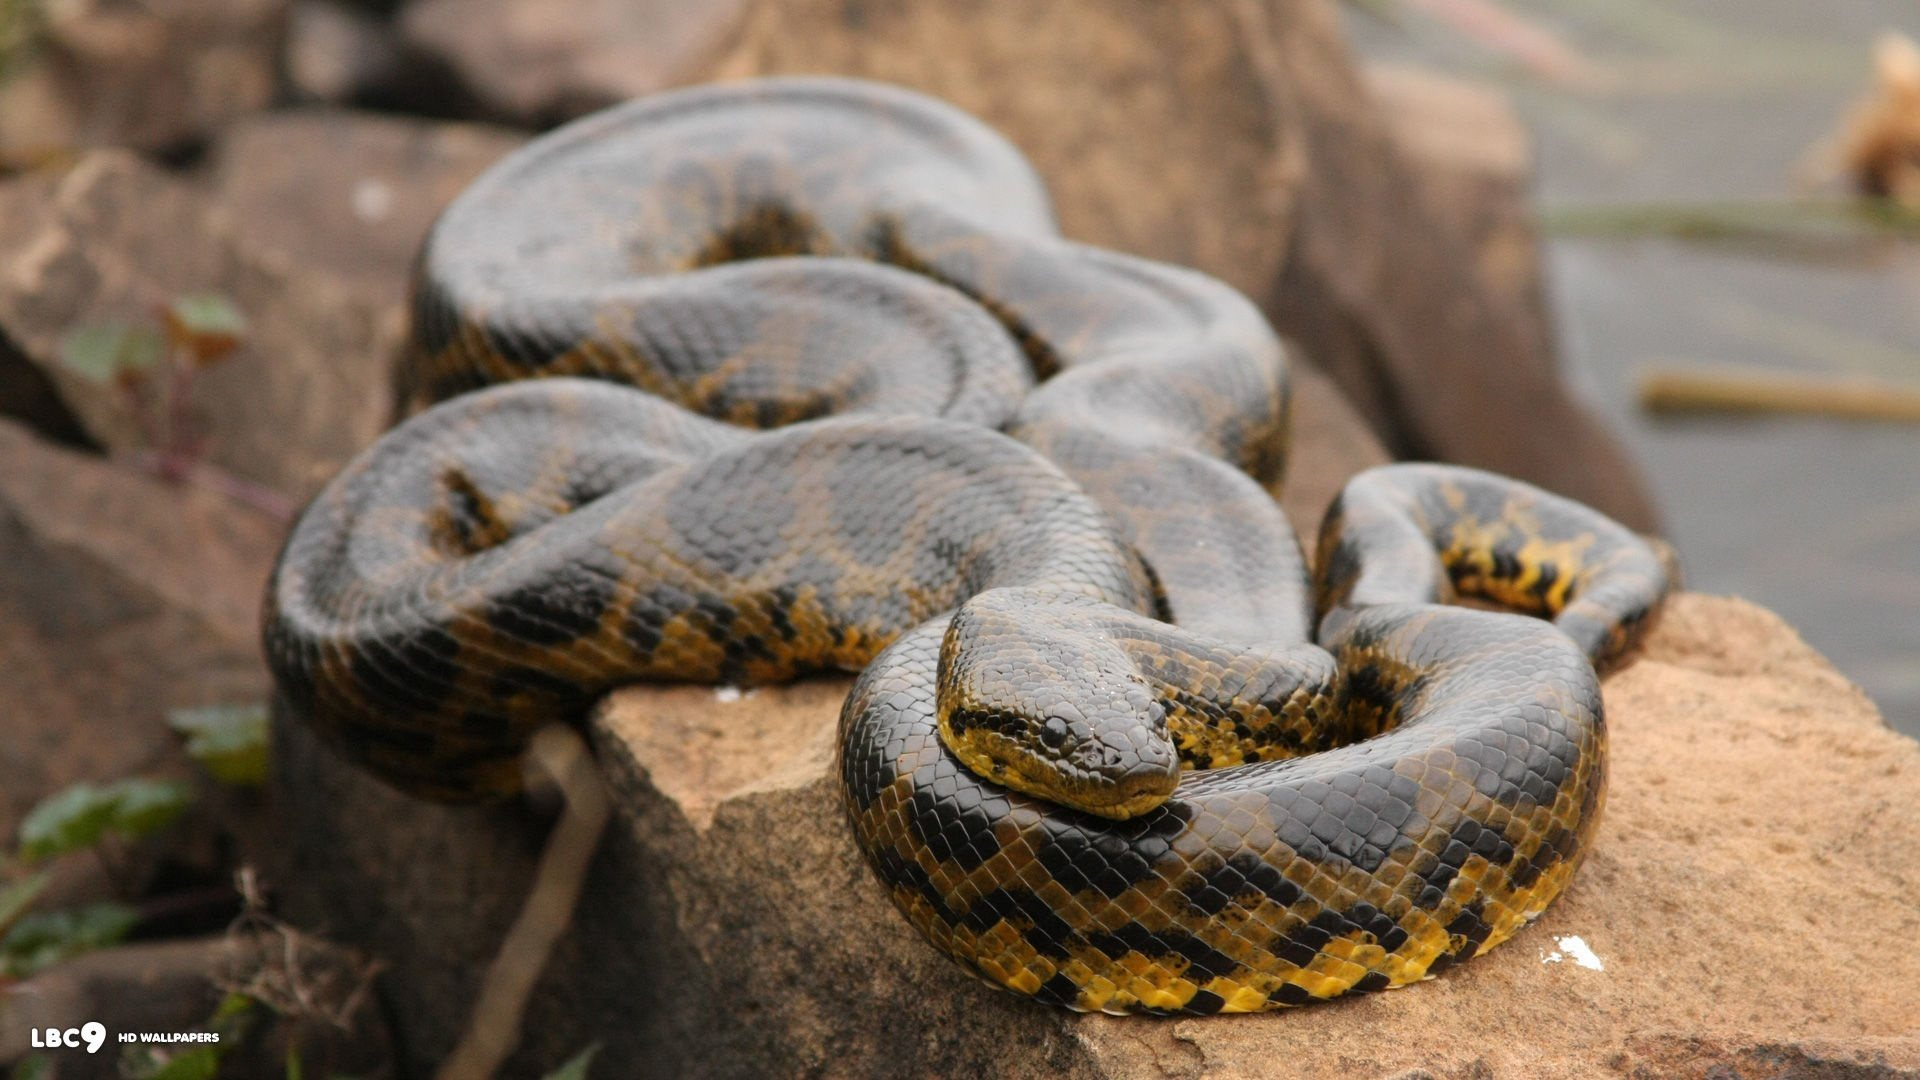 What are some cool facts about Anacondas? - Quora